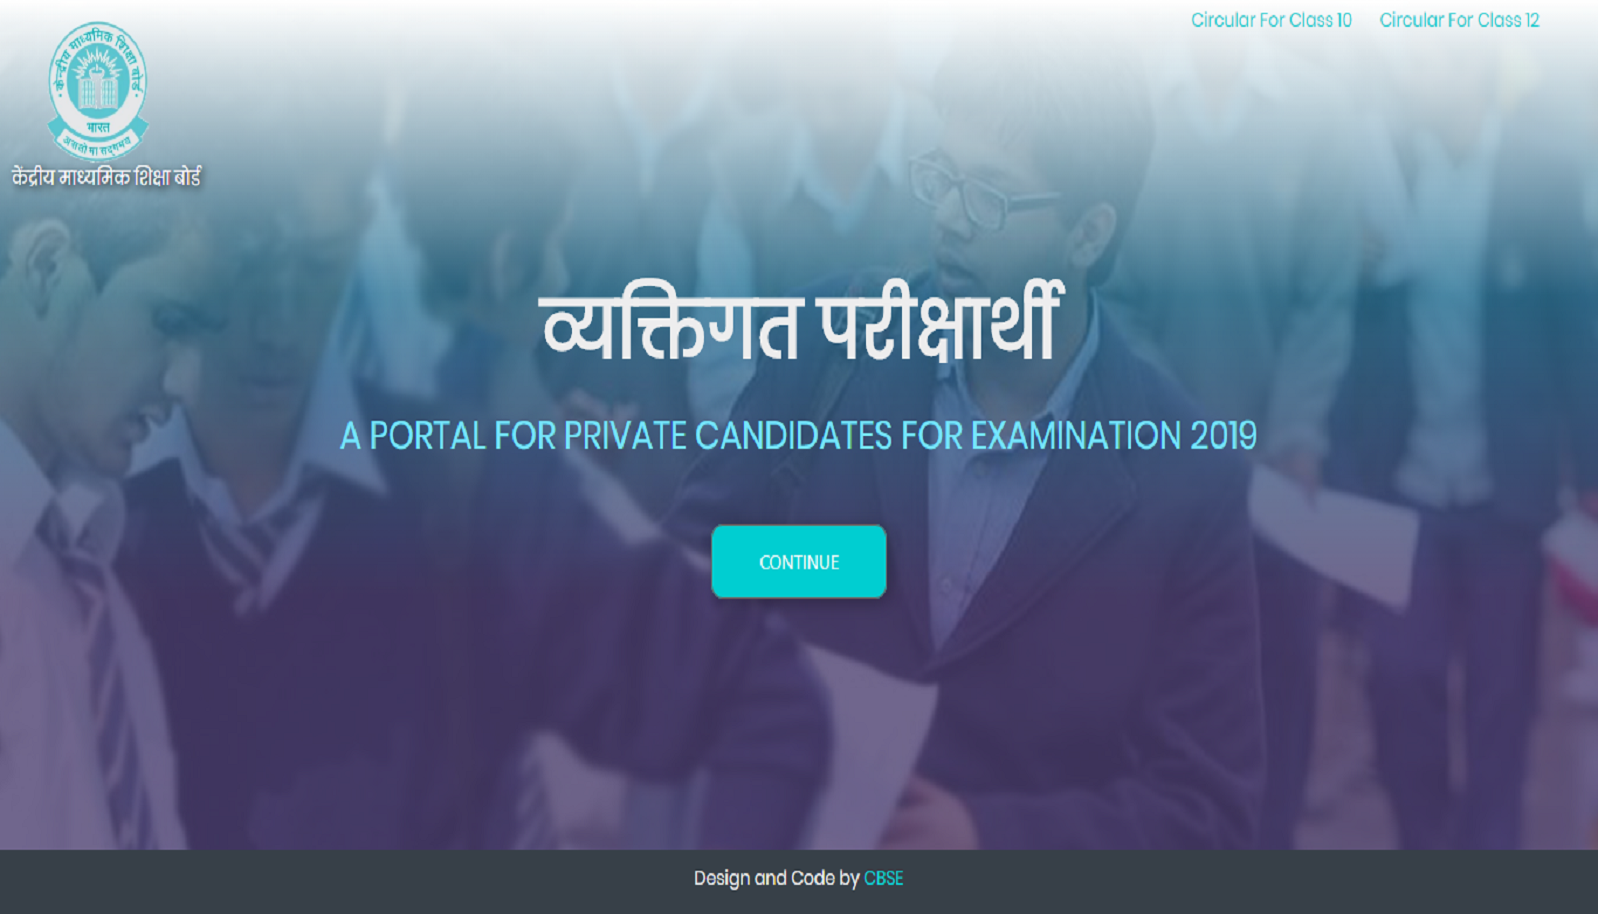 Clipart grade 12 exam results 2019 pdf clipart library download CBSE clipart library download